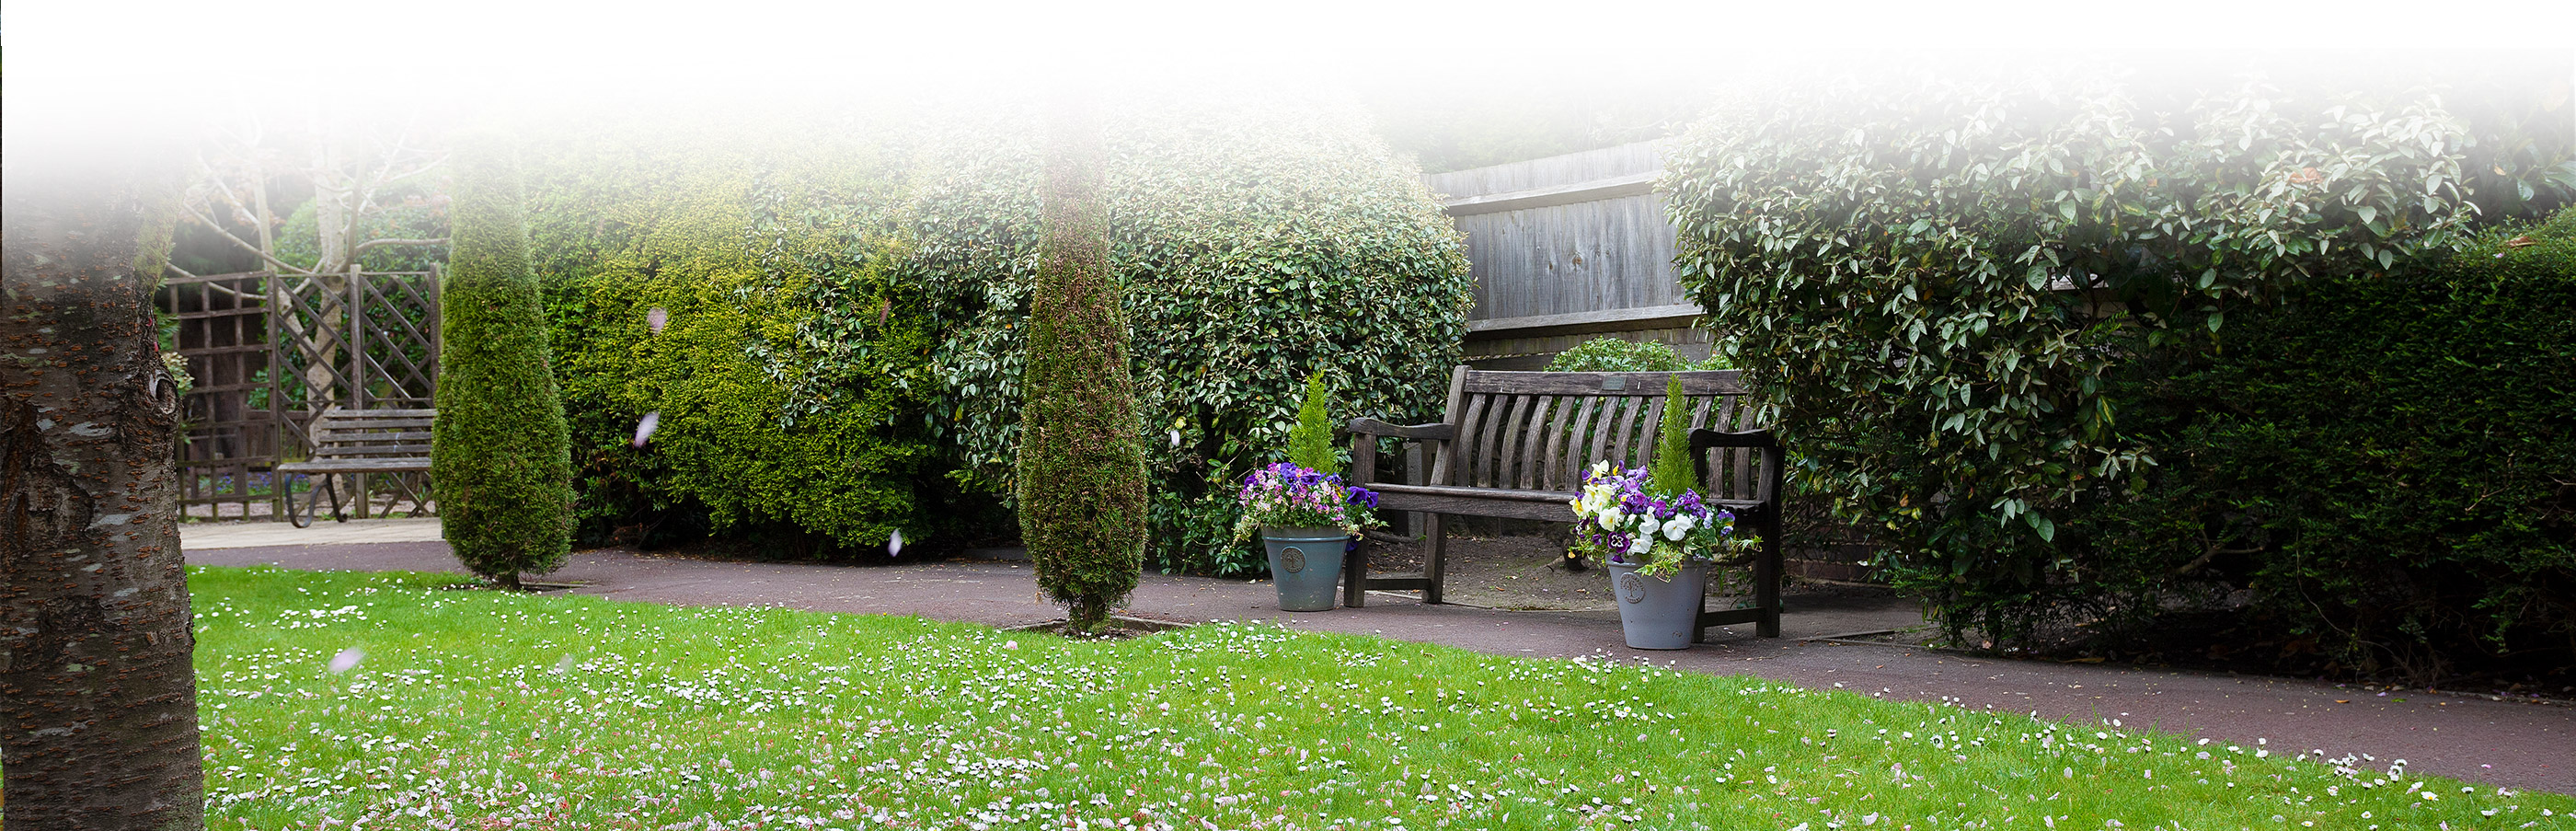 Garden chair view at chestnut view care home Haselmere